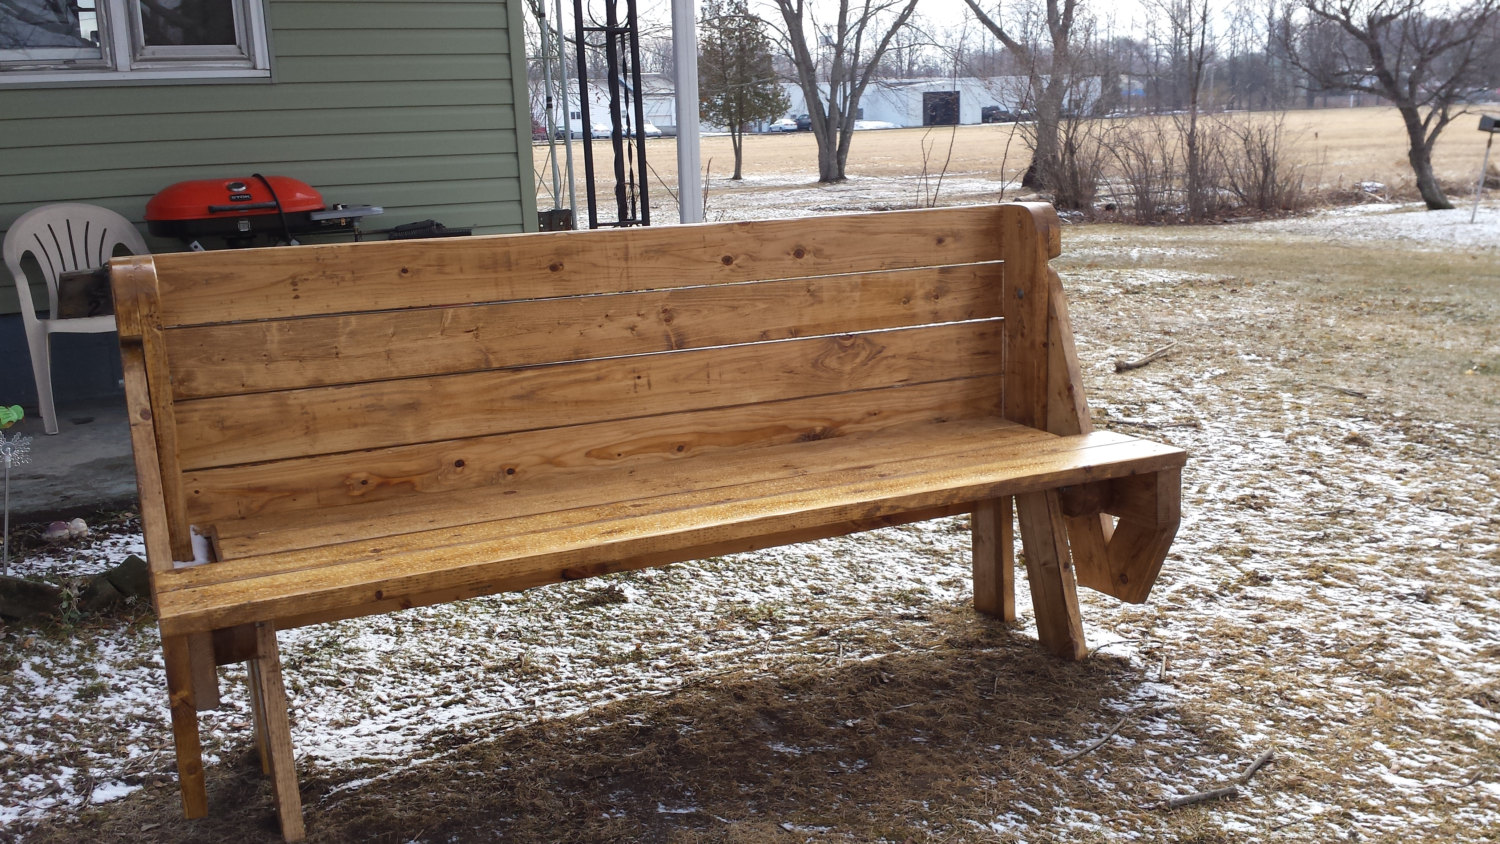 Picnic Table That Converts To Bench For Extra Seting Online Interior Design Nousdecor